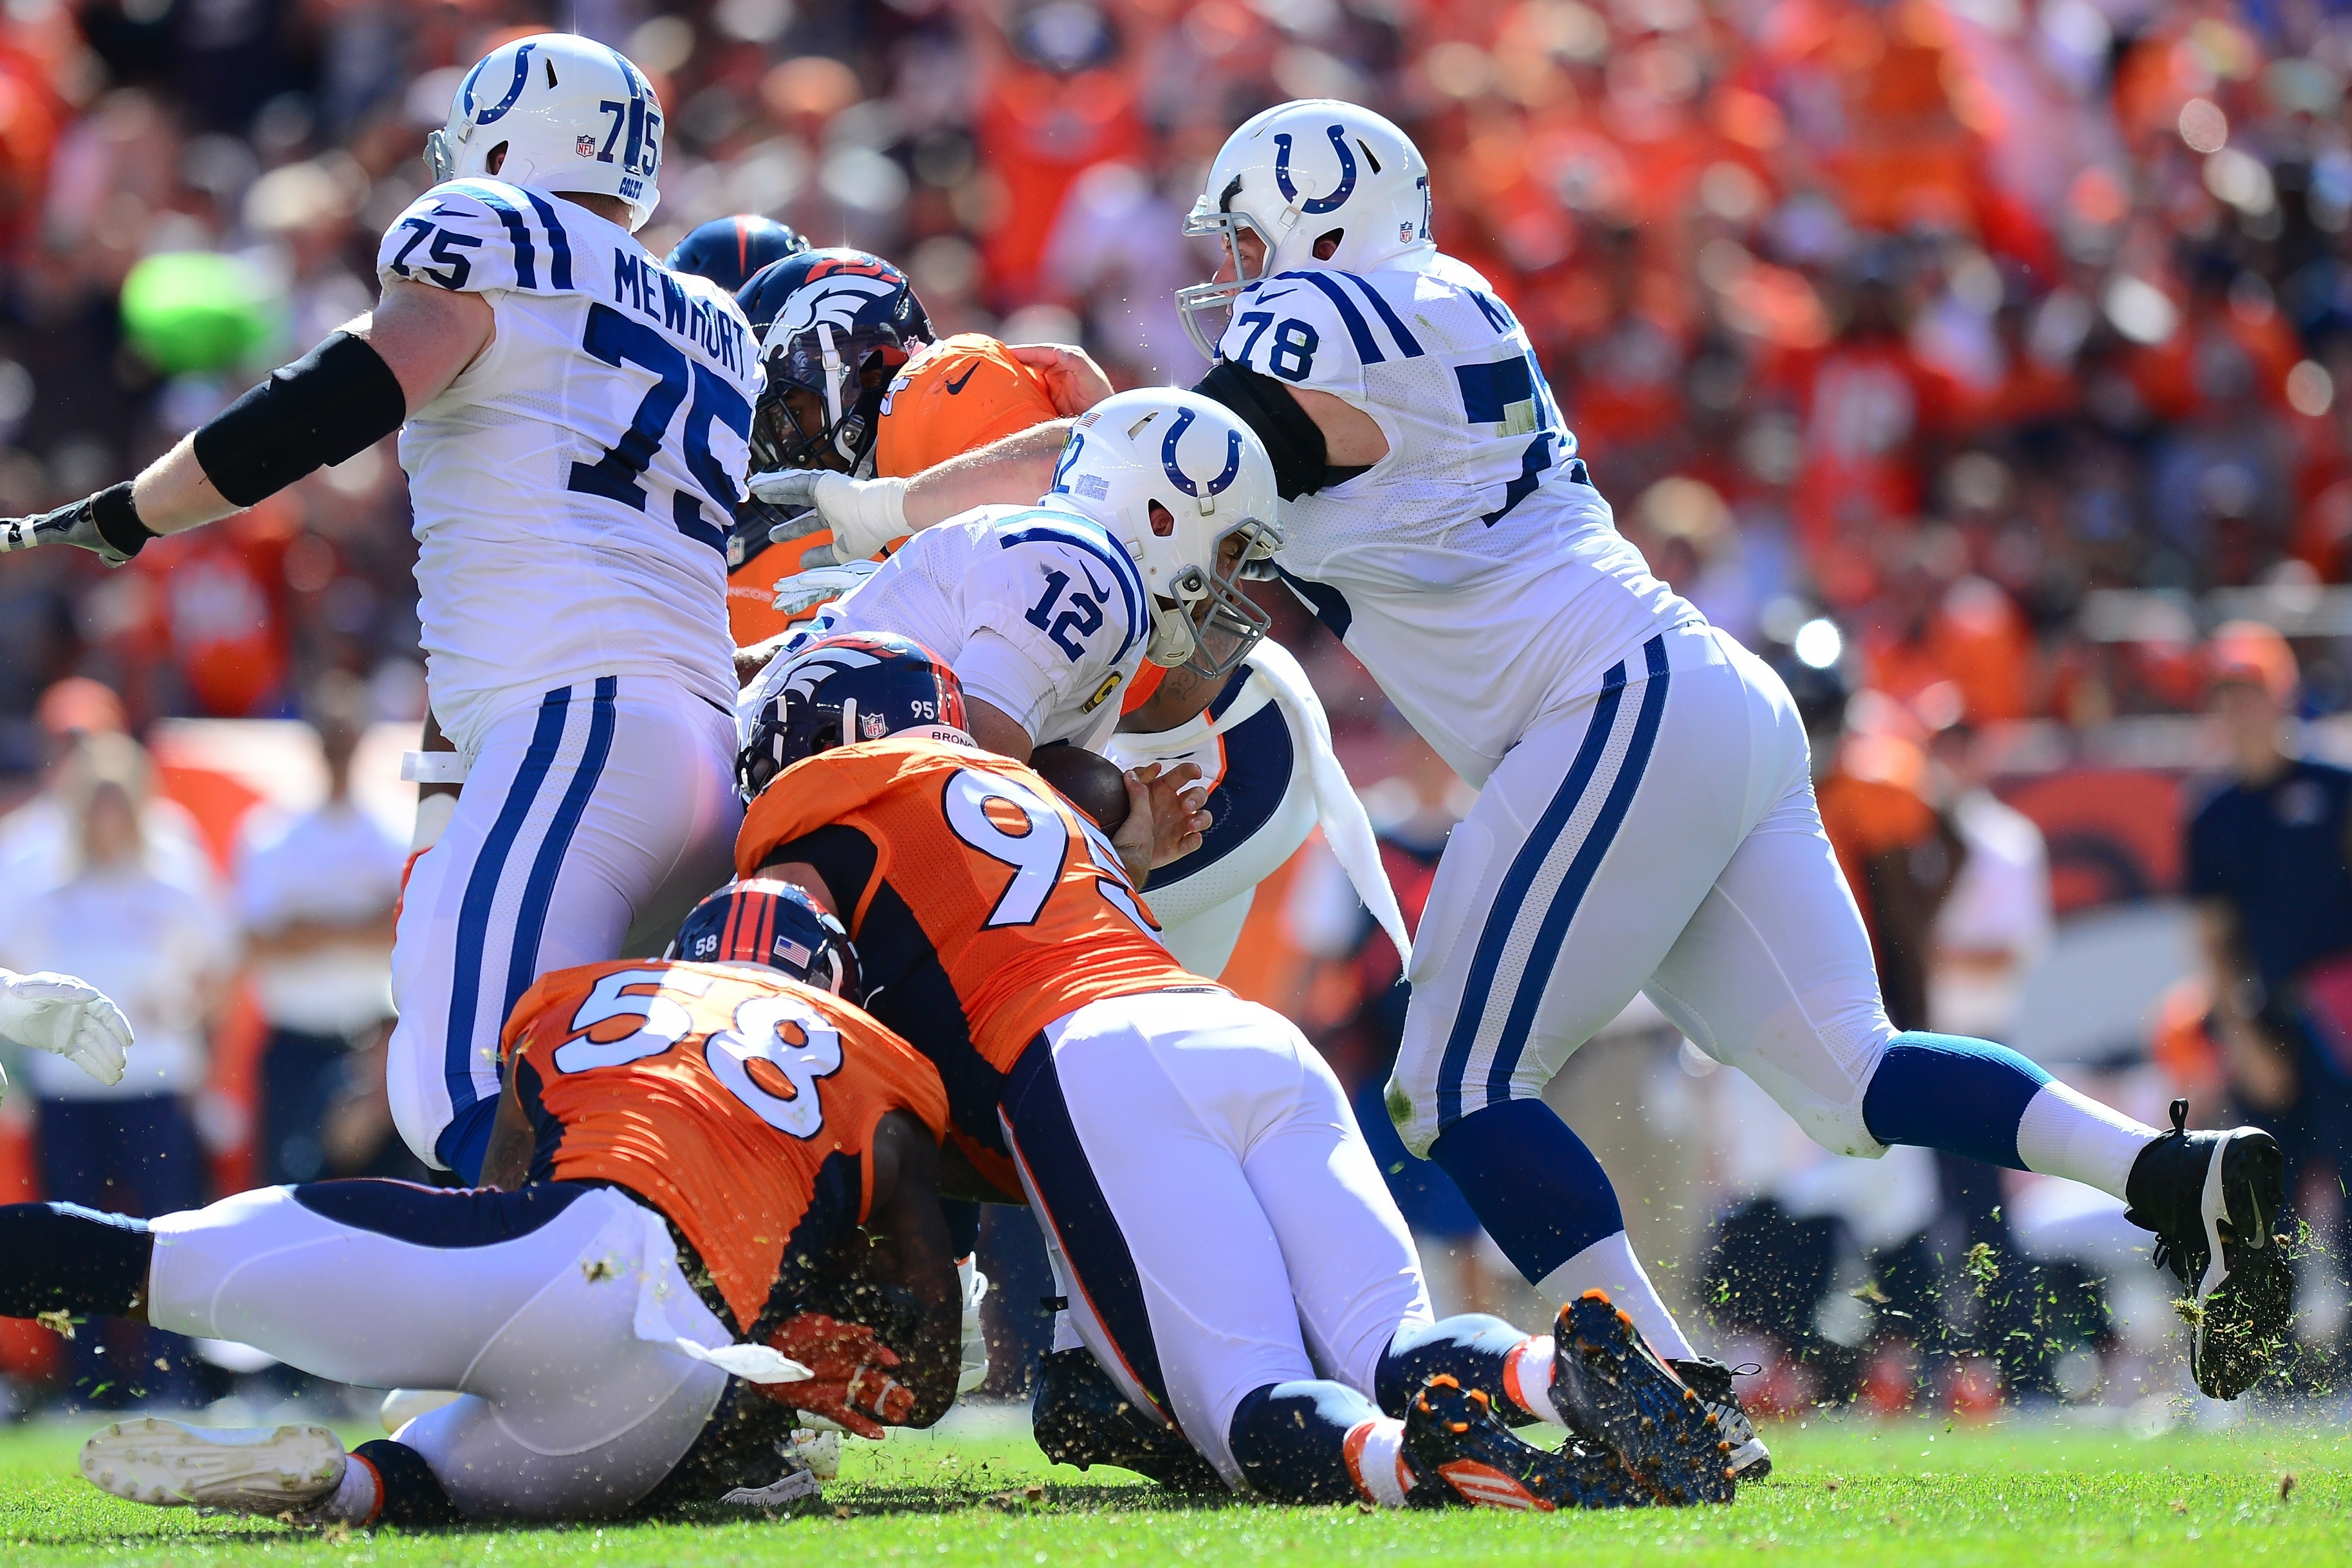 NFL sack leader Von Miller (No. 58) and defensive end Derek Wolfe made sure Indianapolis Colts quarterback Andrew Luck was going nowhere in the Broncos' 34-20 home victory in Week Two.